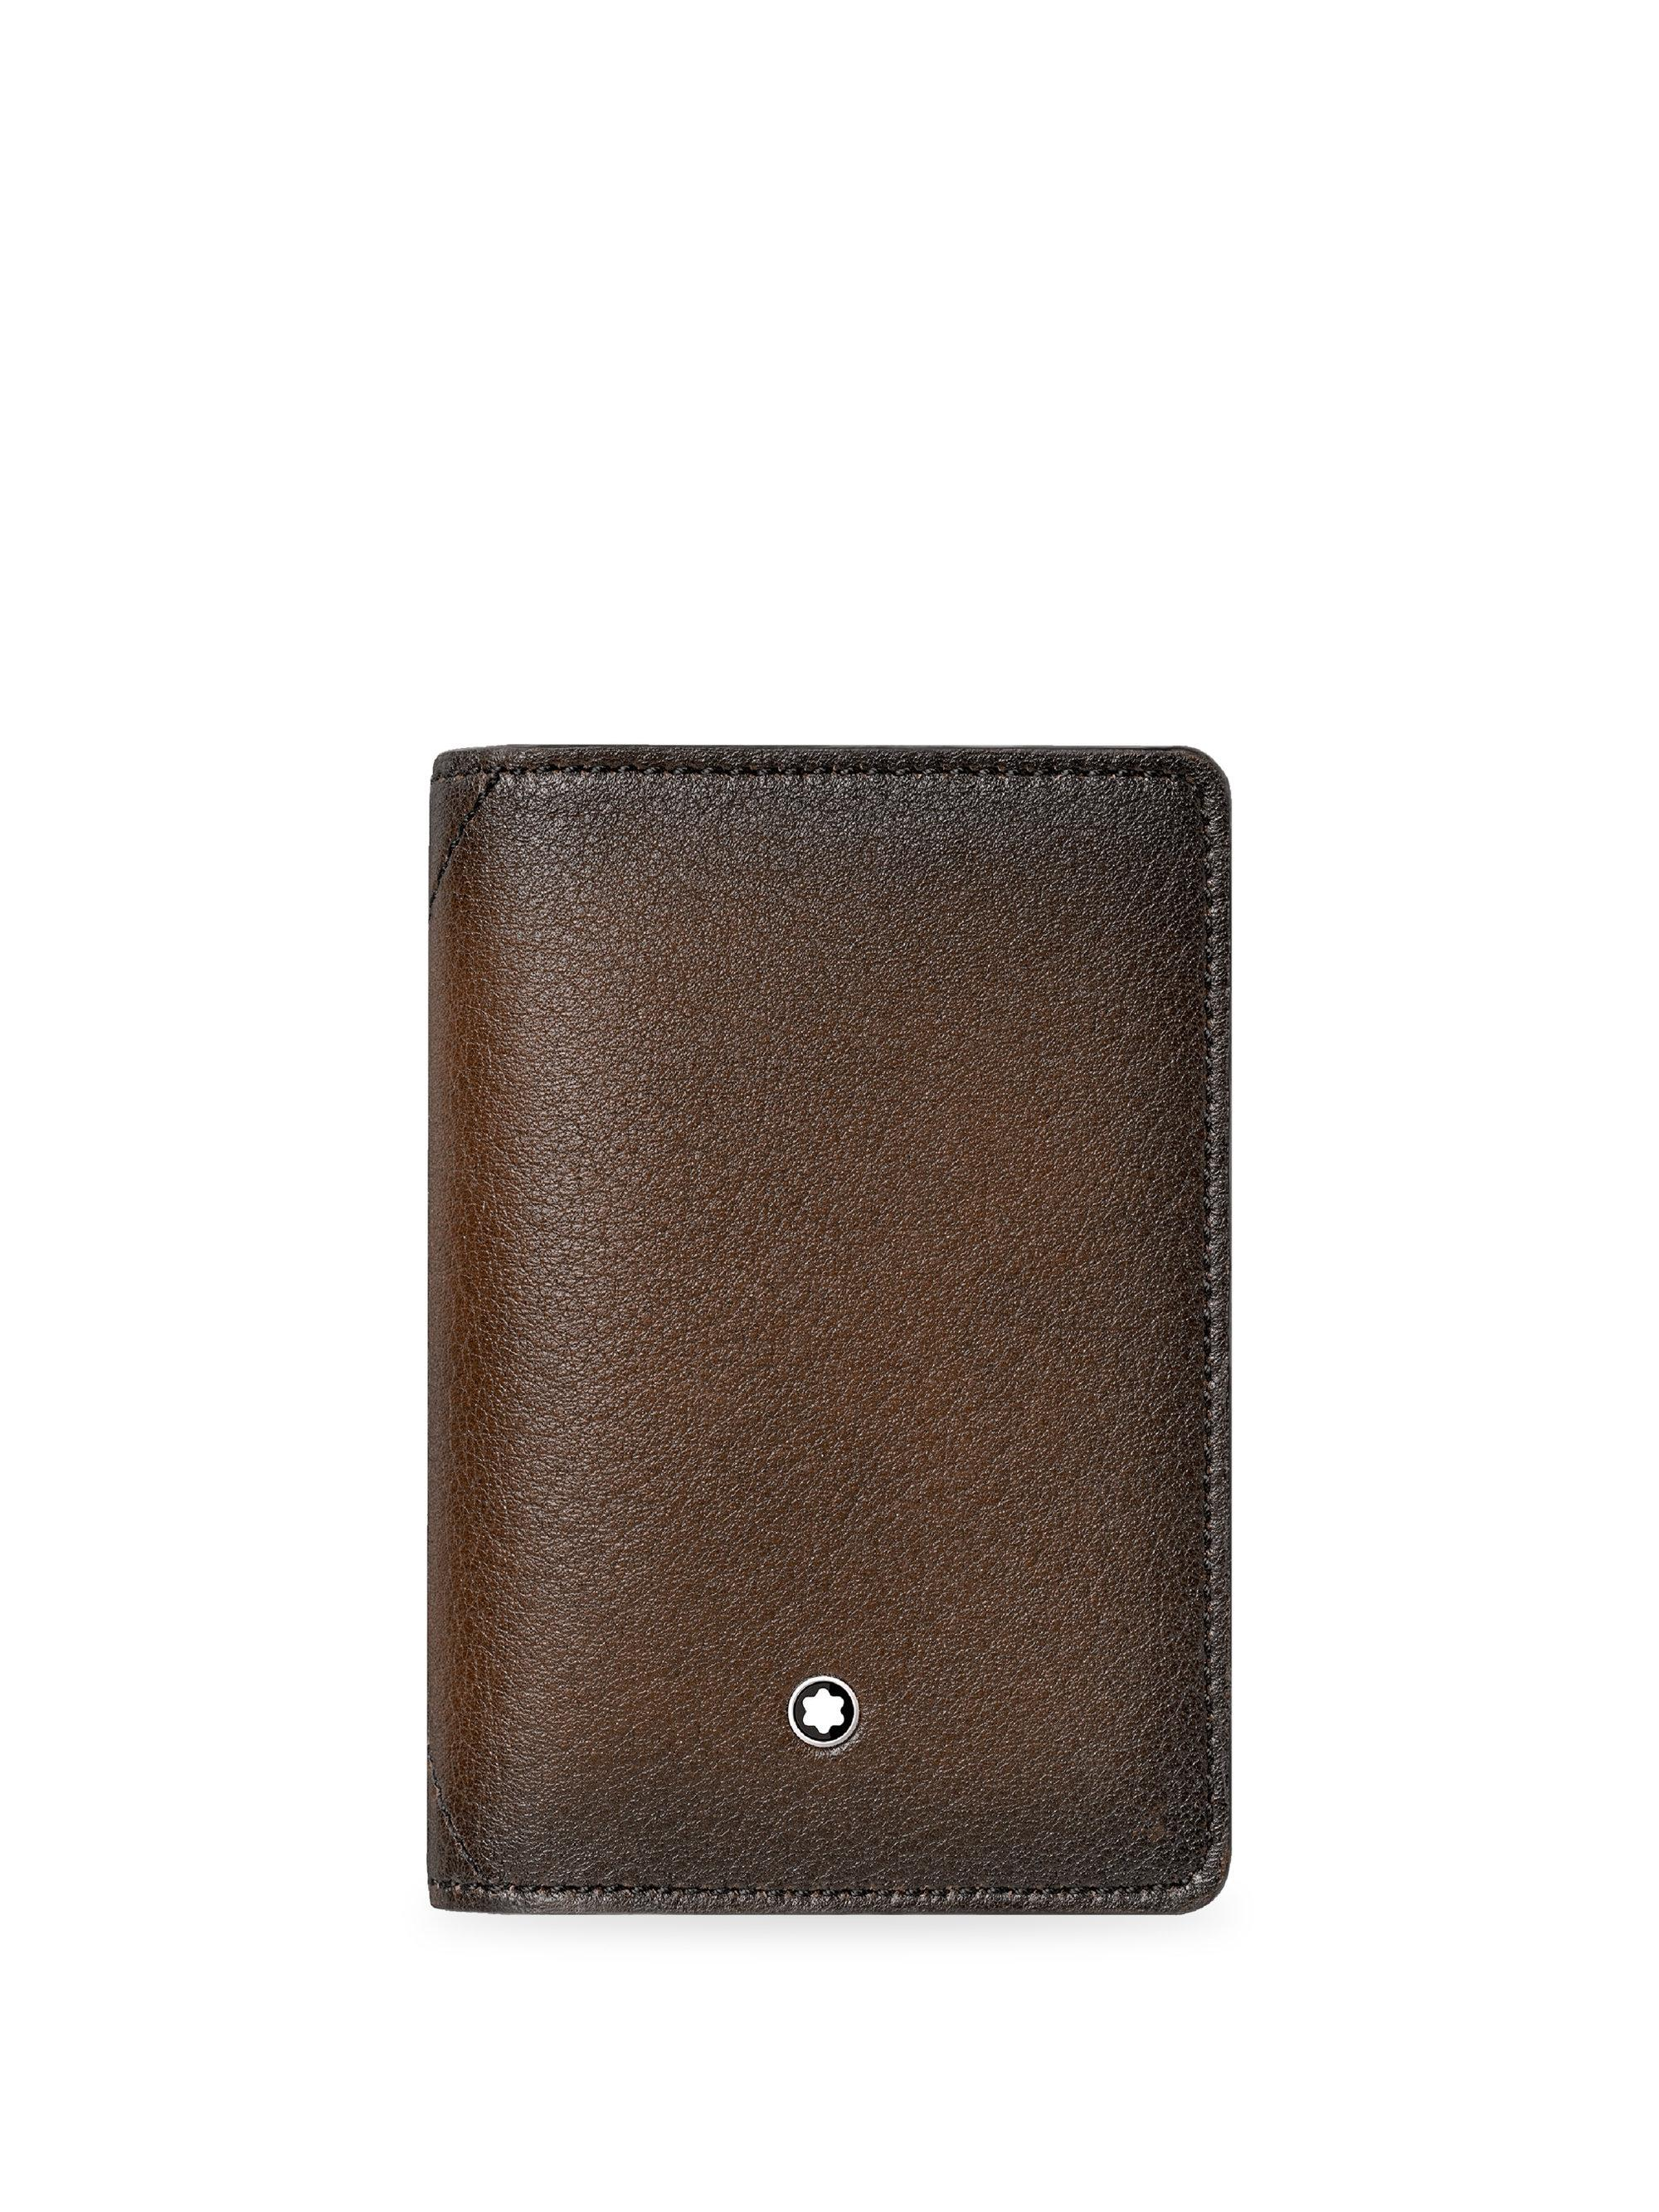 montblanc mens brown gusseted leather business card holder - Leather Business Card Holder